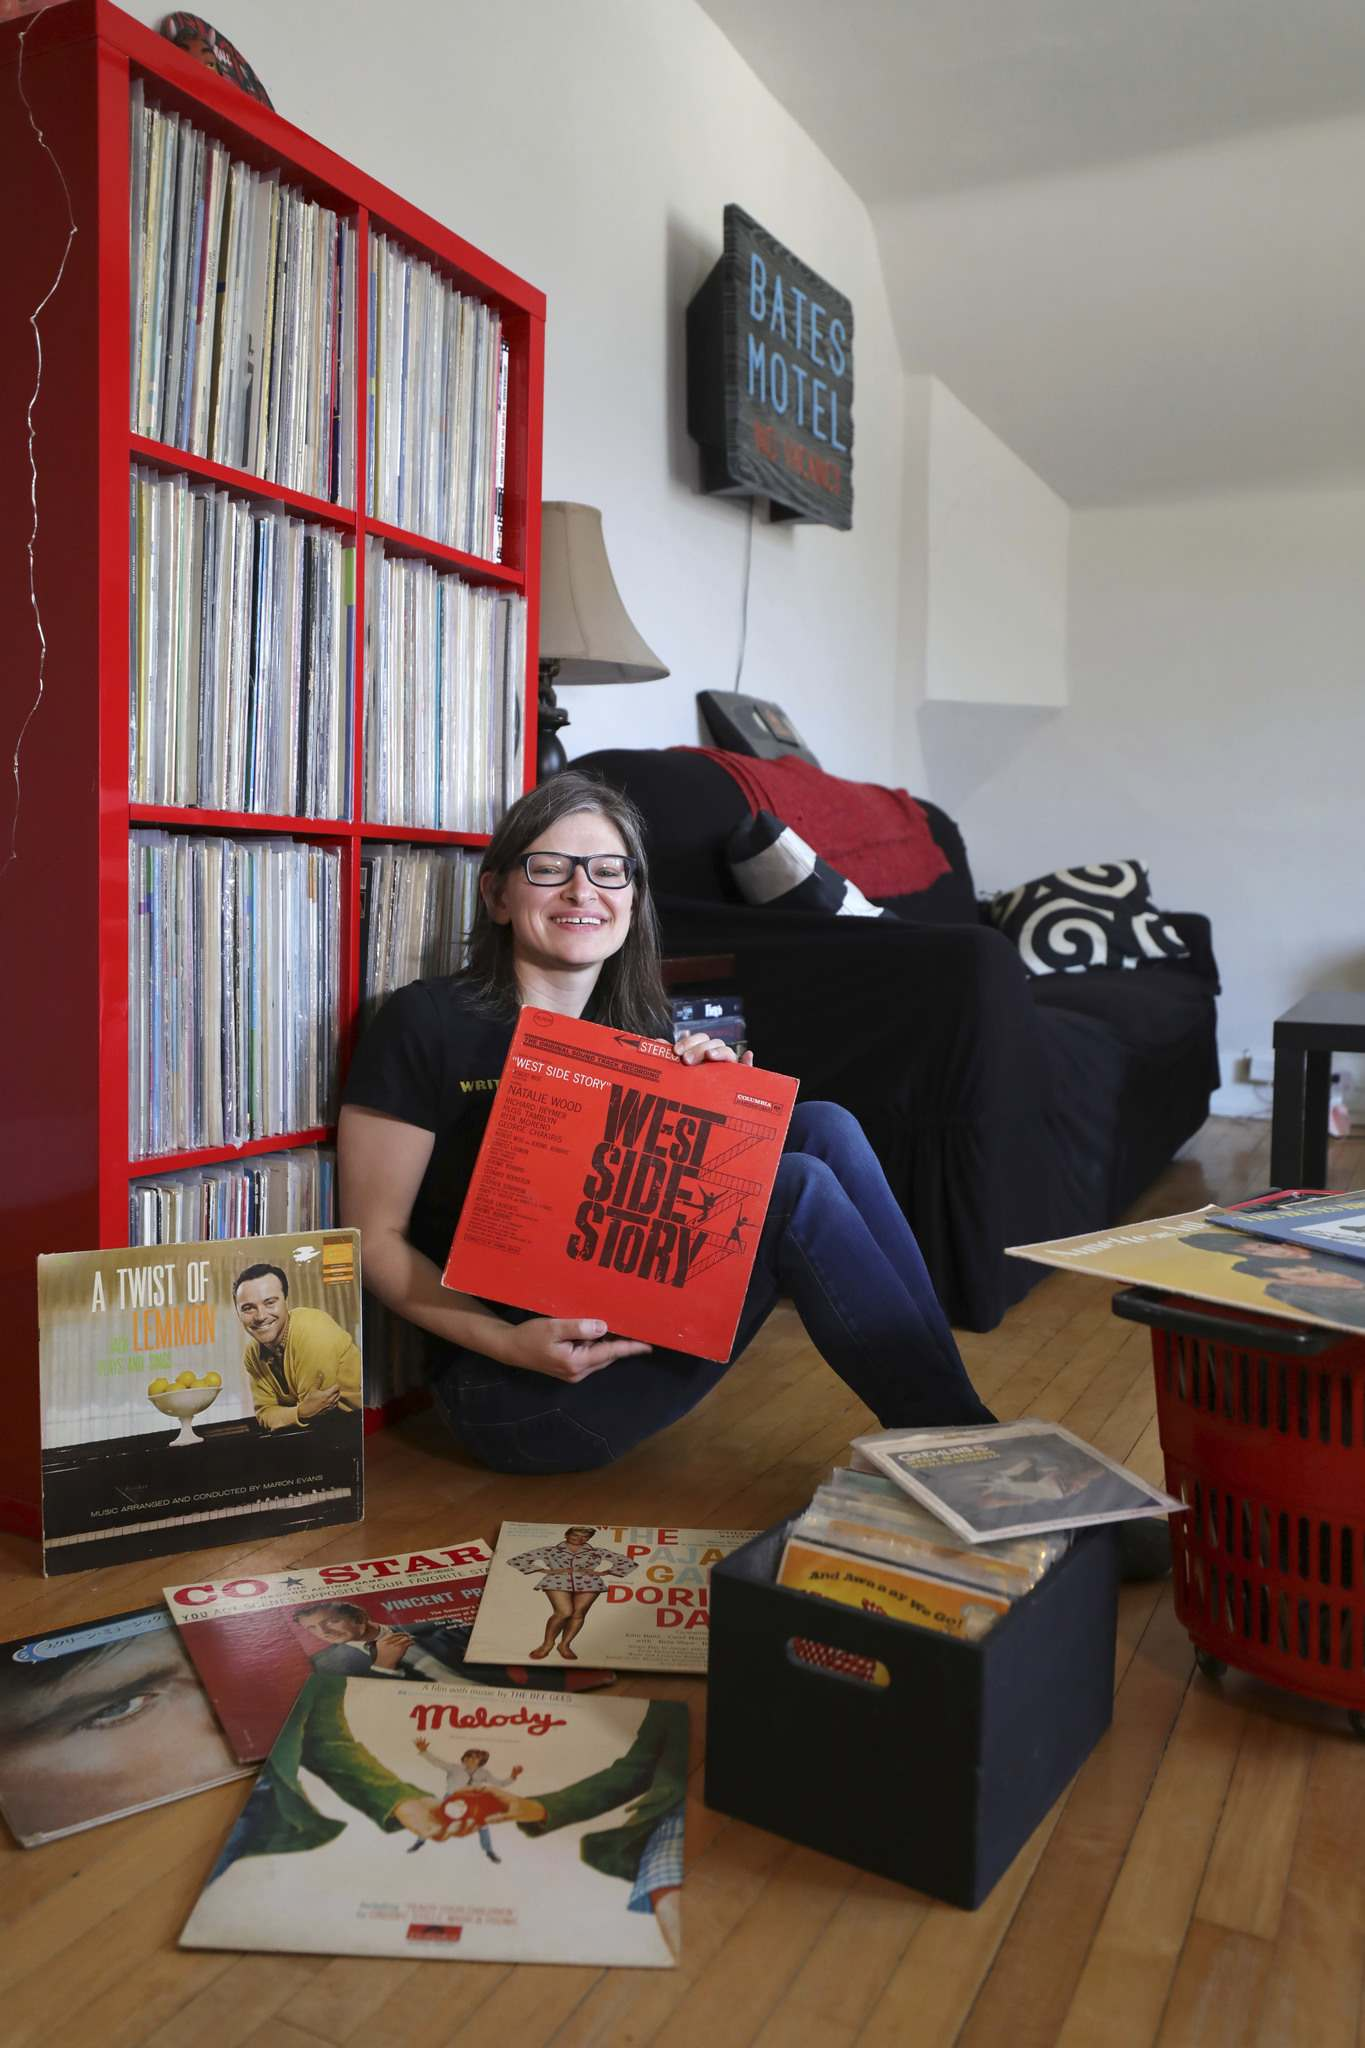 RUTH BONNEVILLE / WINNIPEG FREE PRESS</p><p>Amanda Stefaniuk, host of the weekly Mondo Hollywood radio show, has been collecting movie soundtracks since she was 12. West Side Story was the first soundtrack she ever bought.</p>